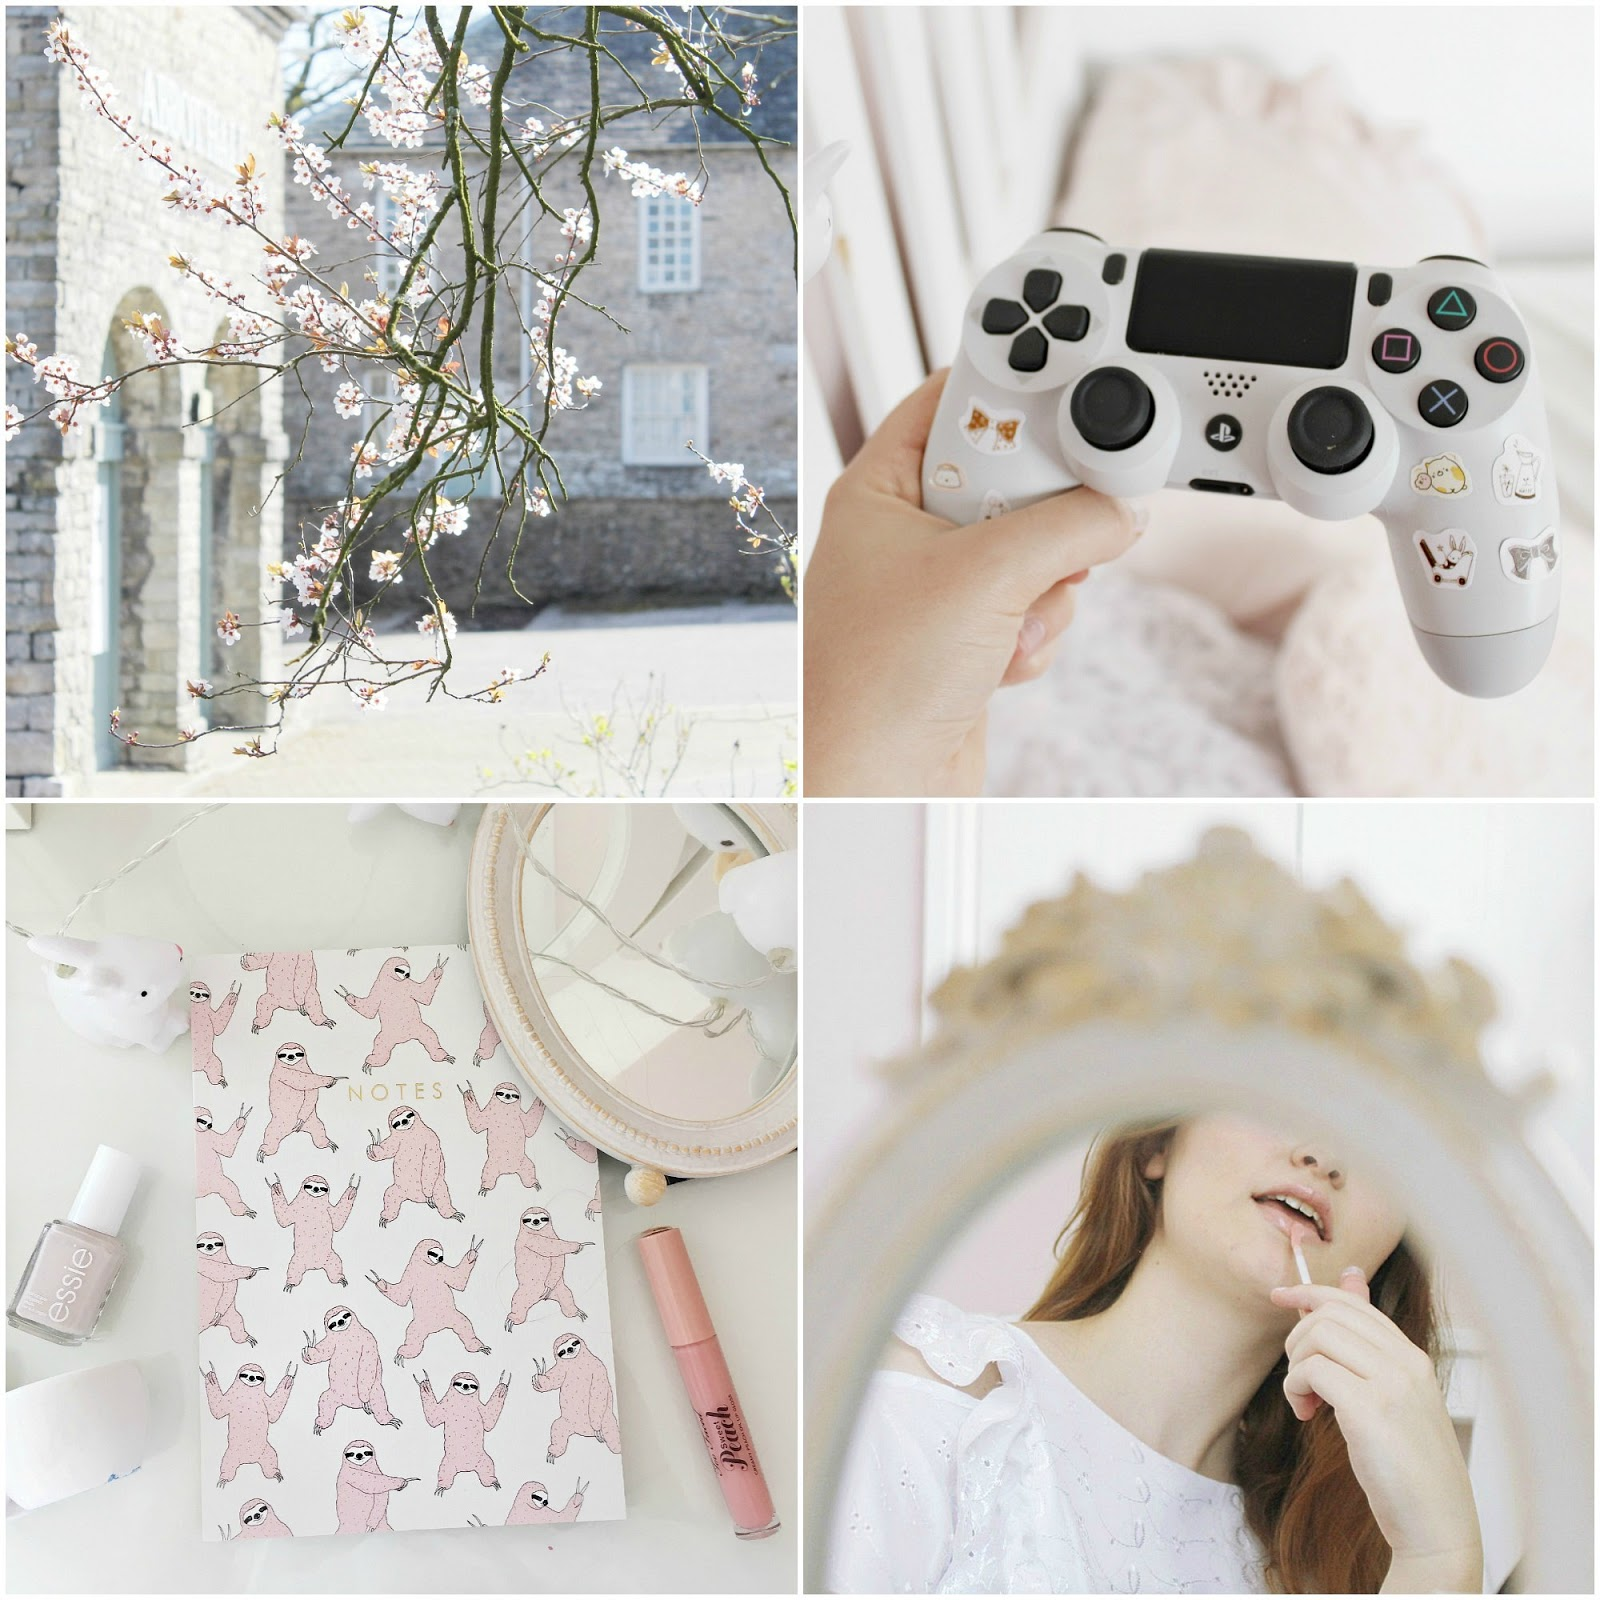 Spring photo diary pink girly blog aesthetic